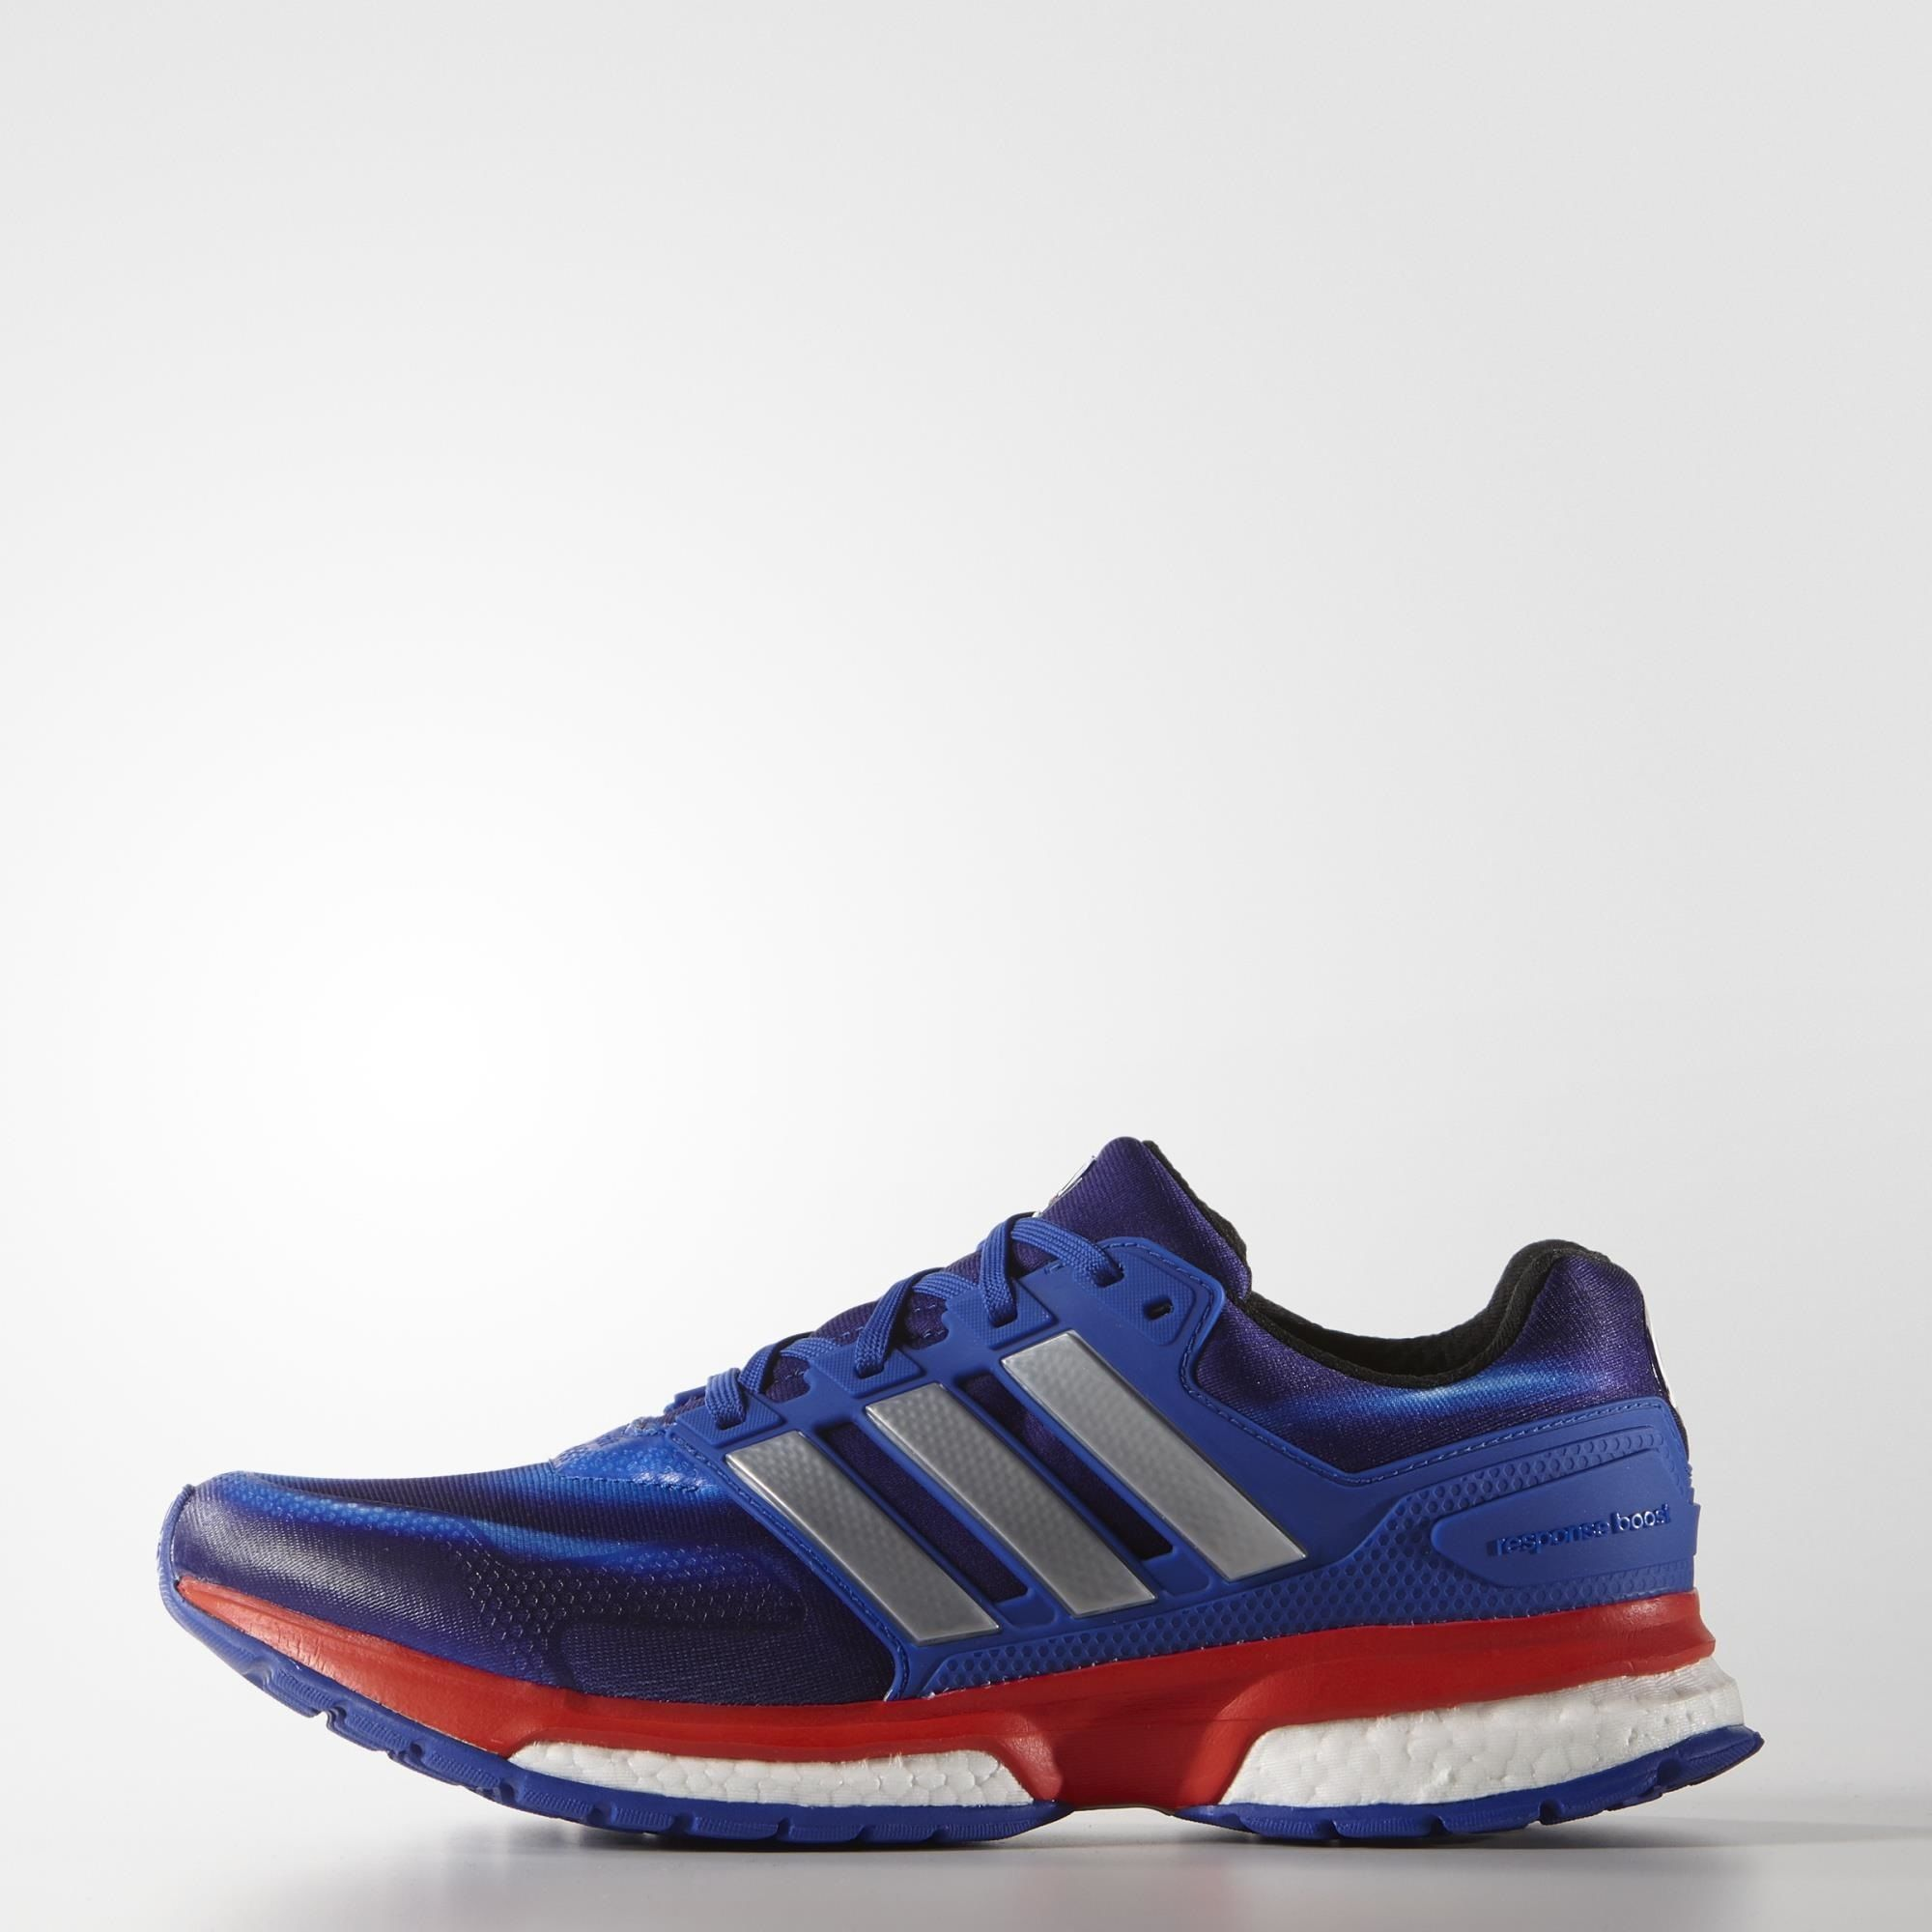 buy online 6b169 b505e adidas Marvel Avengers Response Boost Techfit LTD Shoes - Blue  adidas US